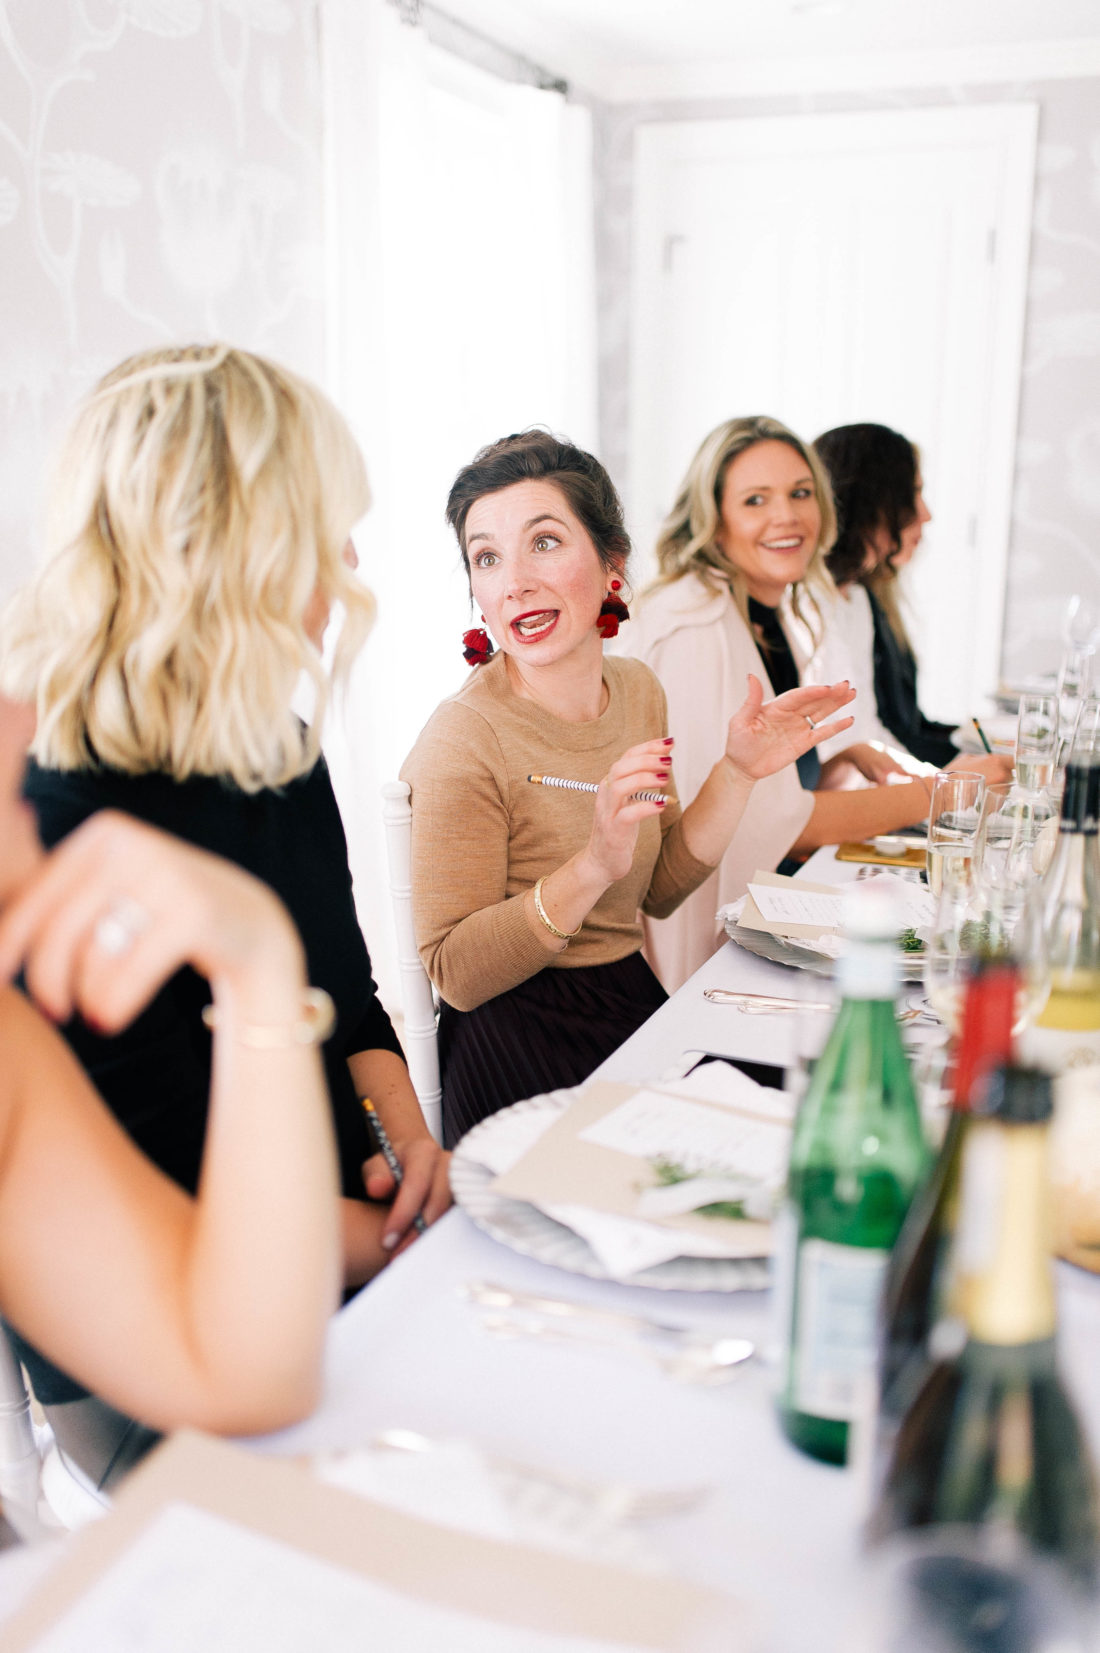 guests eat and chat at Eva Amurri Martino's Friendsgiving at her Connecticut home